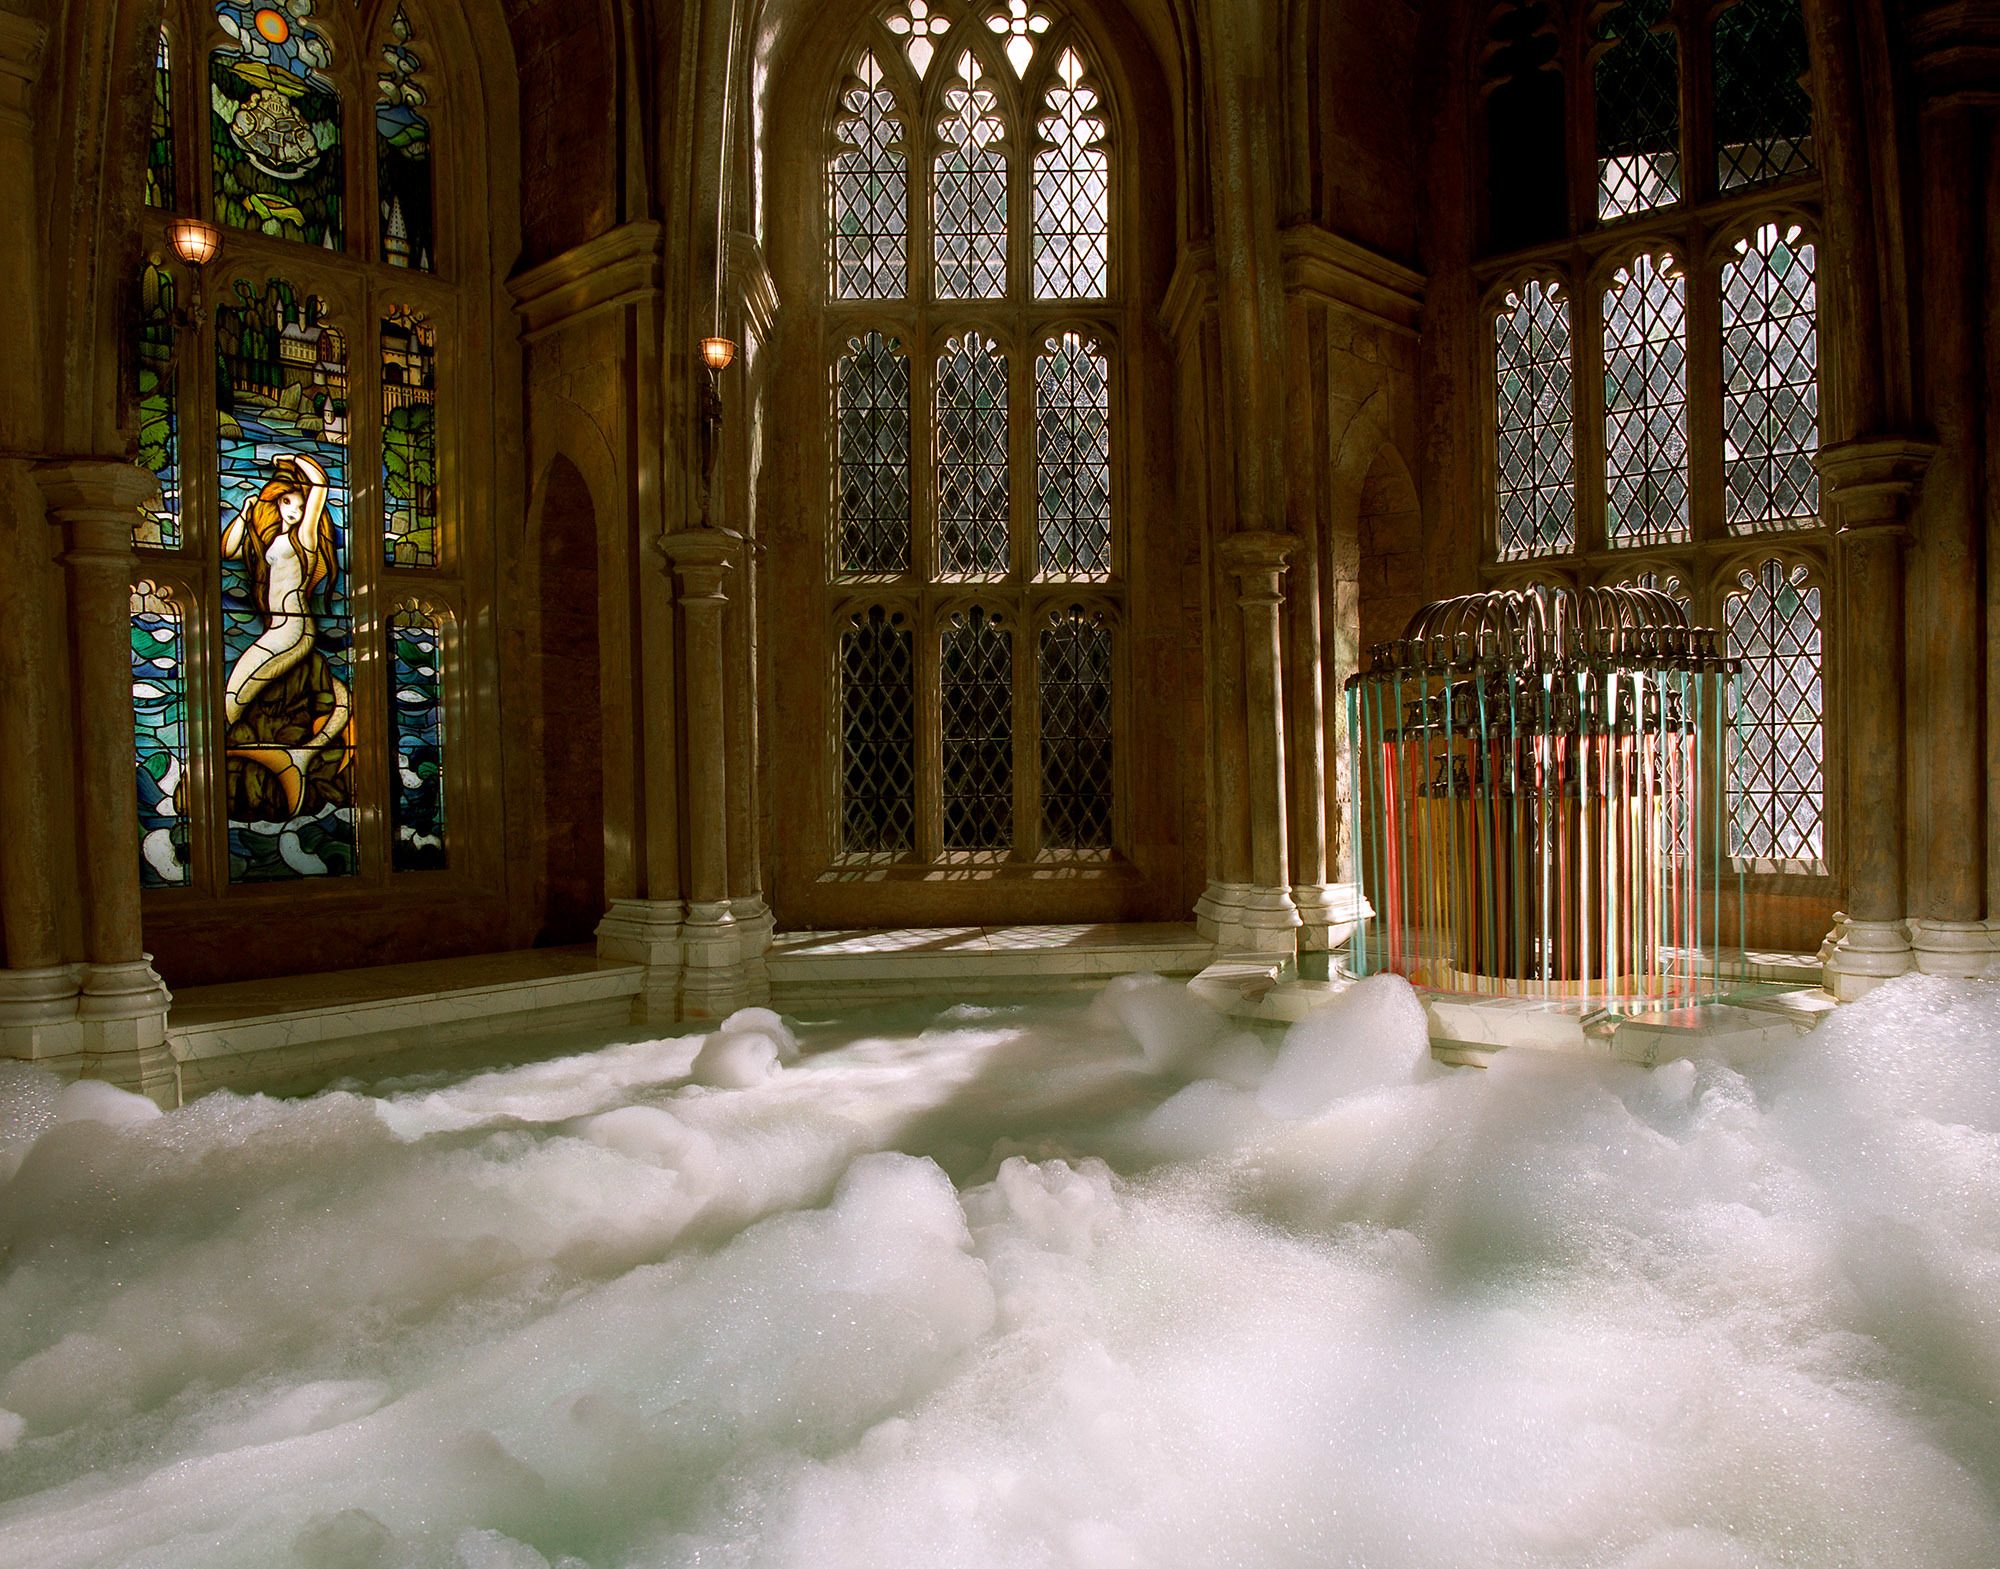 Prefects' bathroom, Harry Potter, Warner Bros Studio Tour London, Time Out